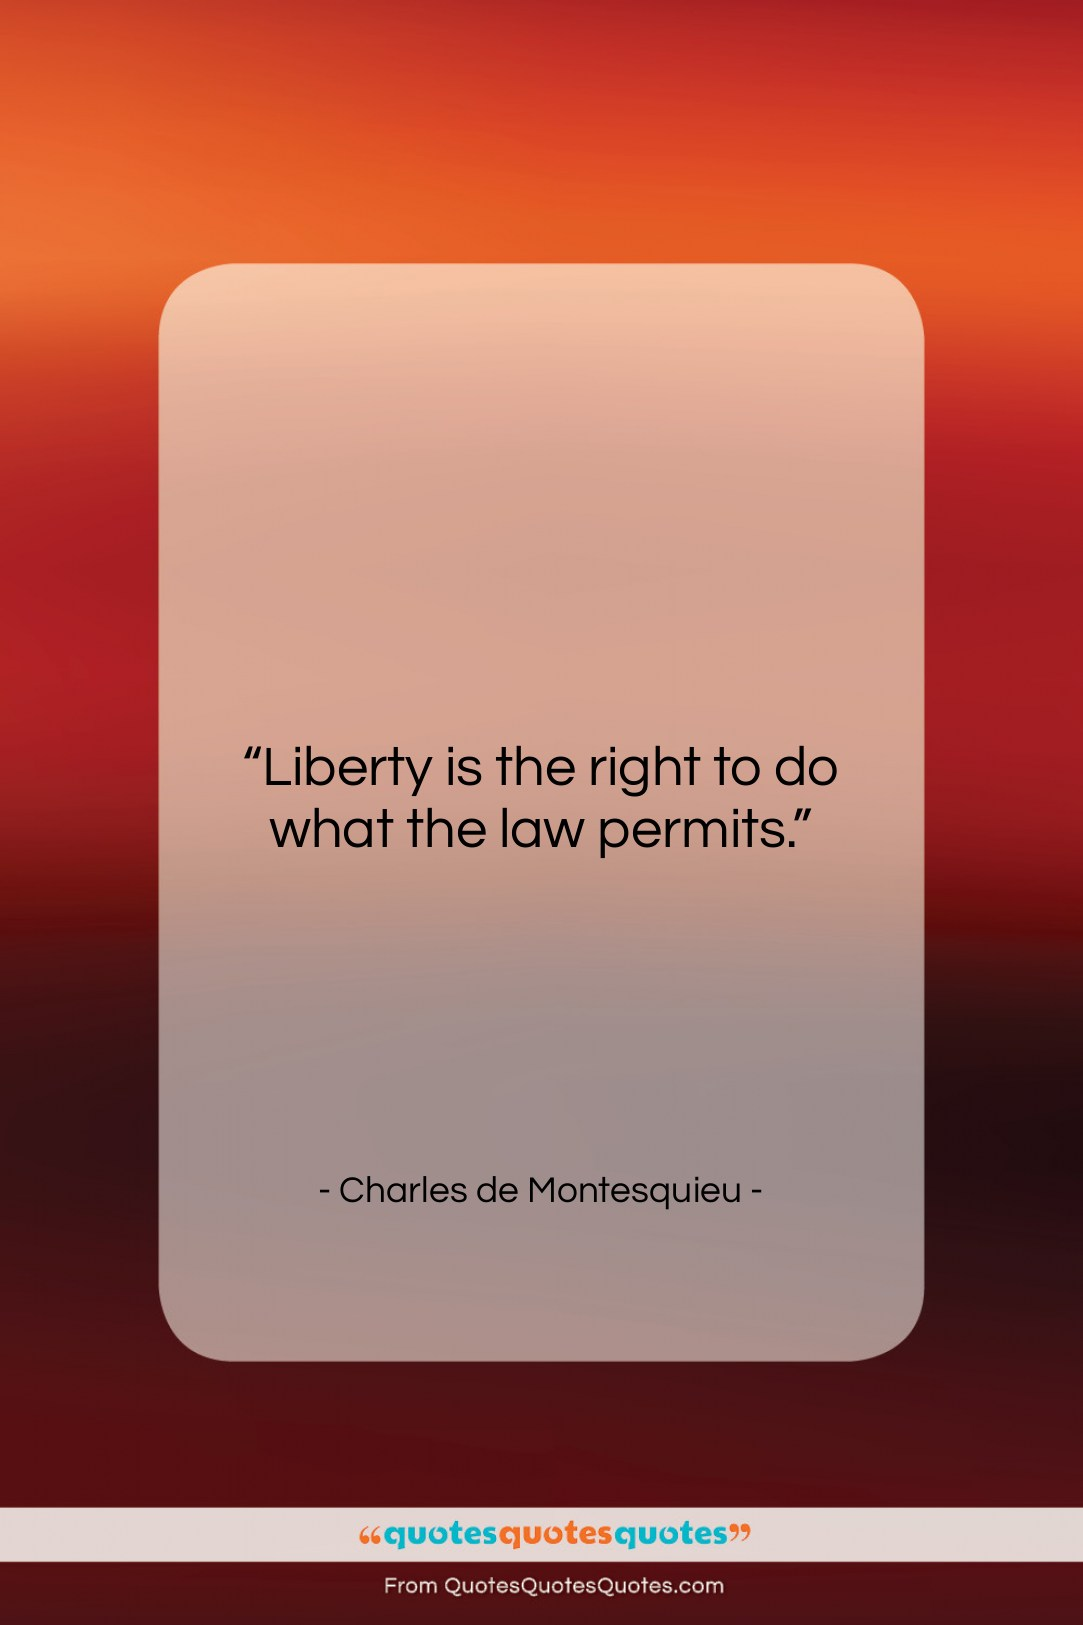 """Charles de Montesquieu quote: """"Liberty is the right to do what…""""- at QuotesQuotesQuotes.com"""